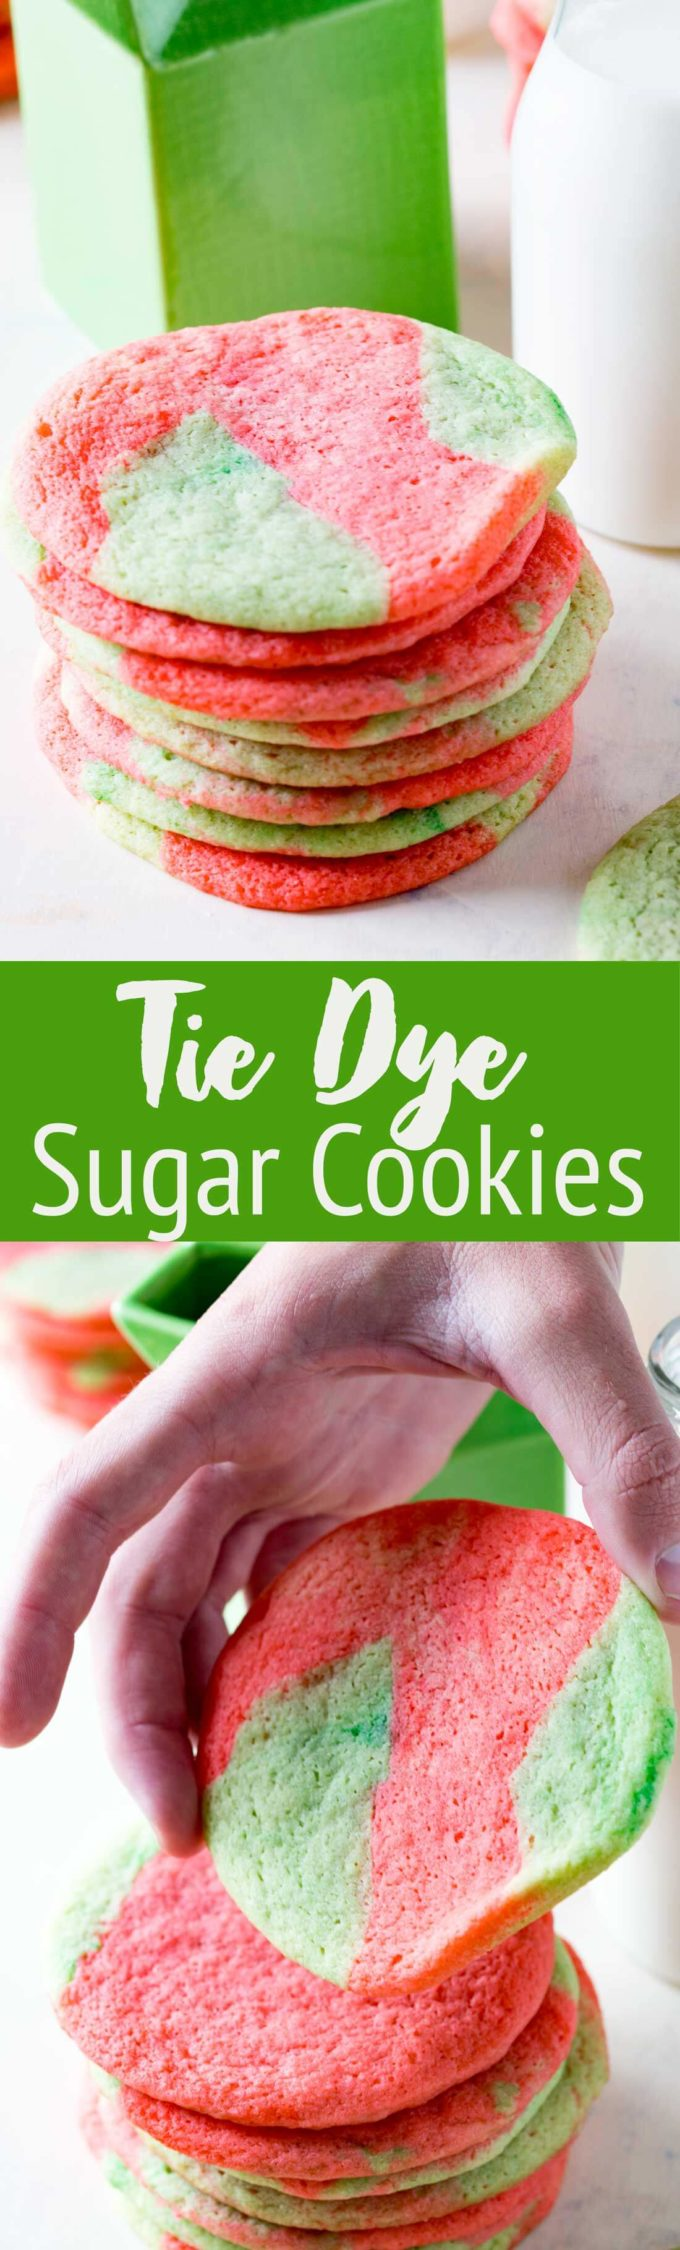 Tie Dye Sugar Cookies are a fun twist on a classic sugar cookie that can be customized for the holiday.